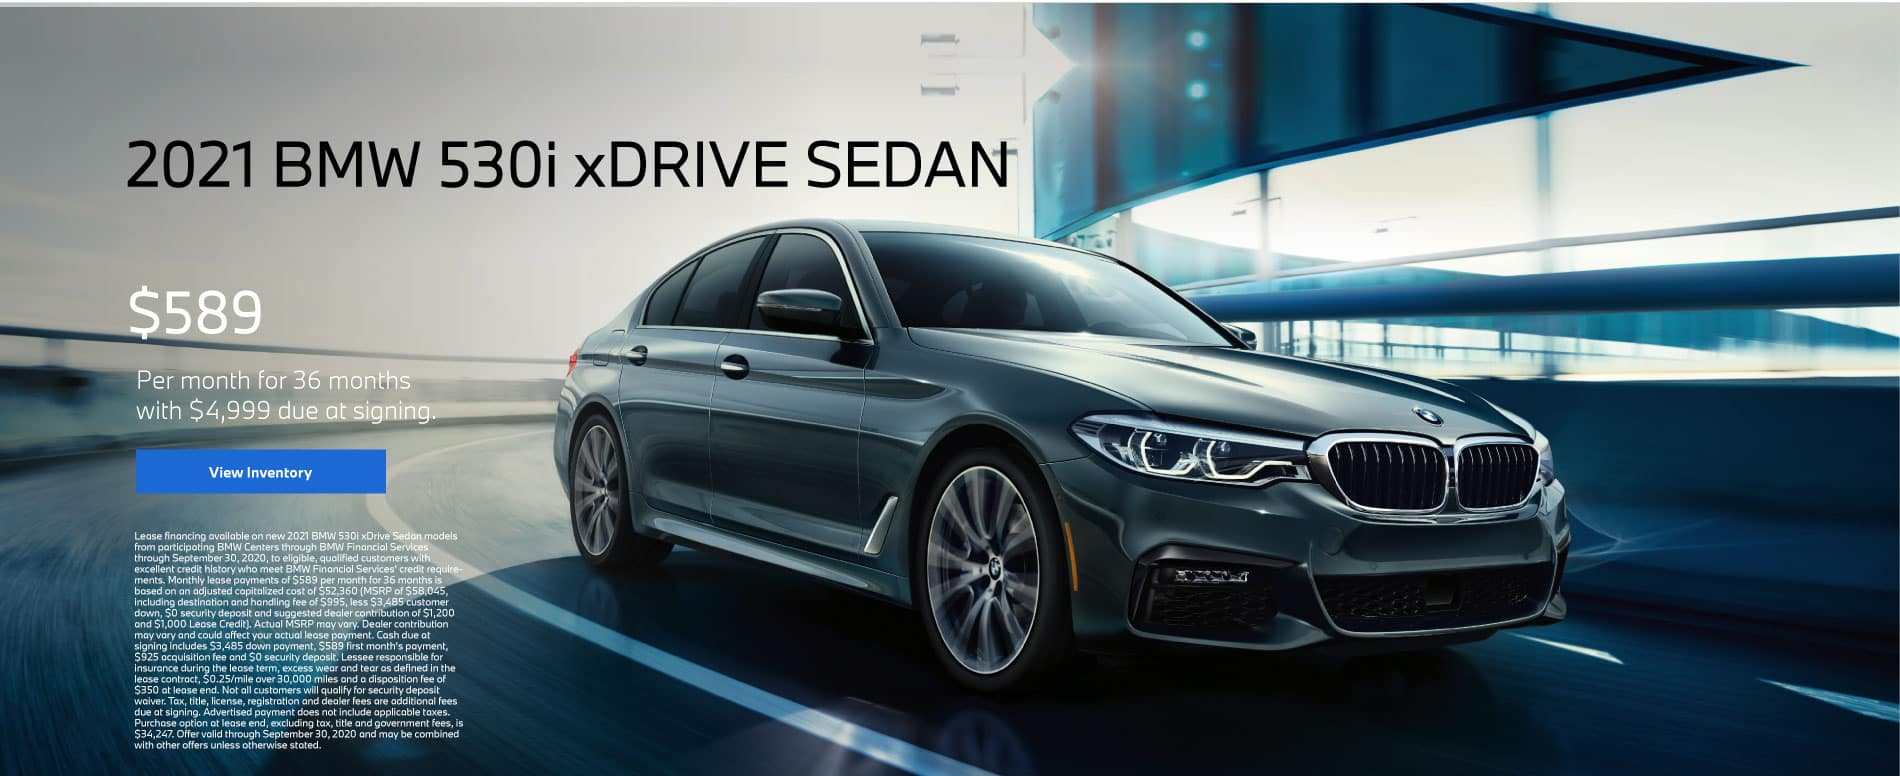 2021 BMW 530i xDRIVE SEDAN - Lease for $589 Per Month for 36 Months - $4,999 Due At Signing. Click for offer.